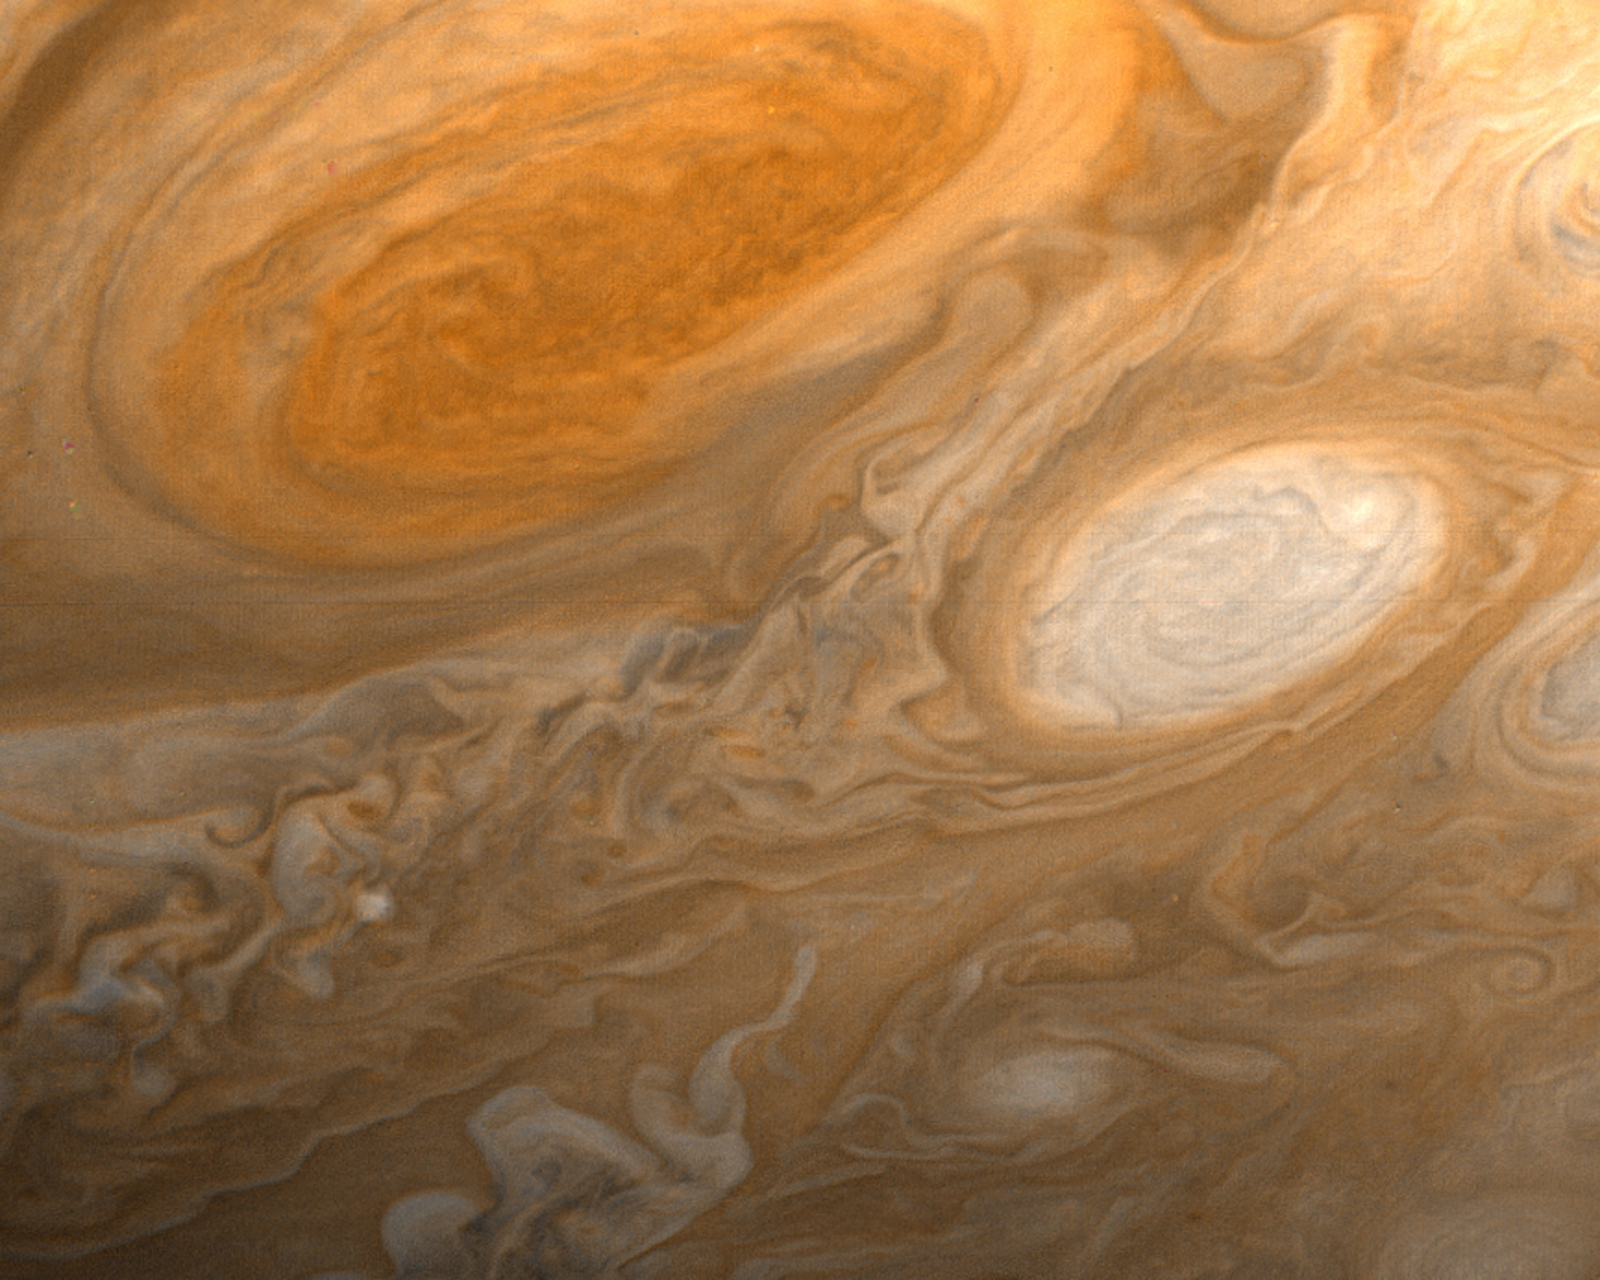 Nasa's scientists may have finally solved the mystery of the Great Red Spot on Jupiter